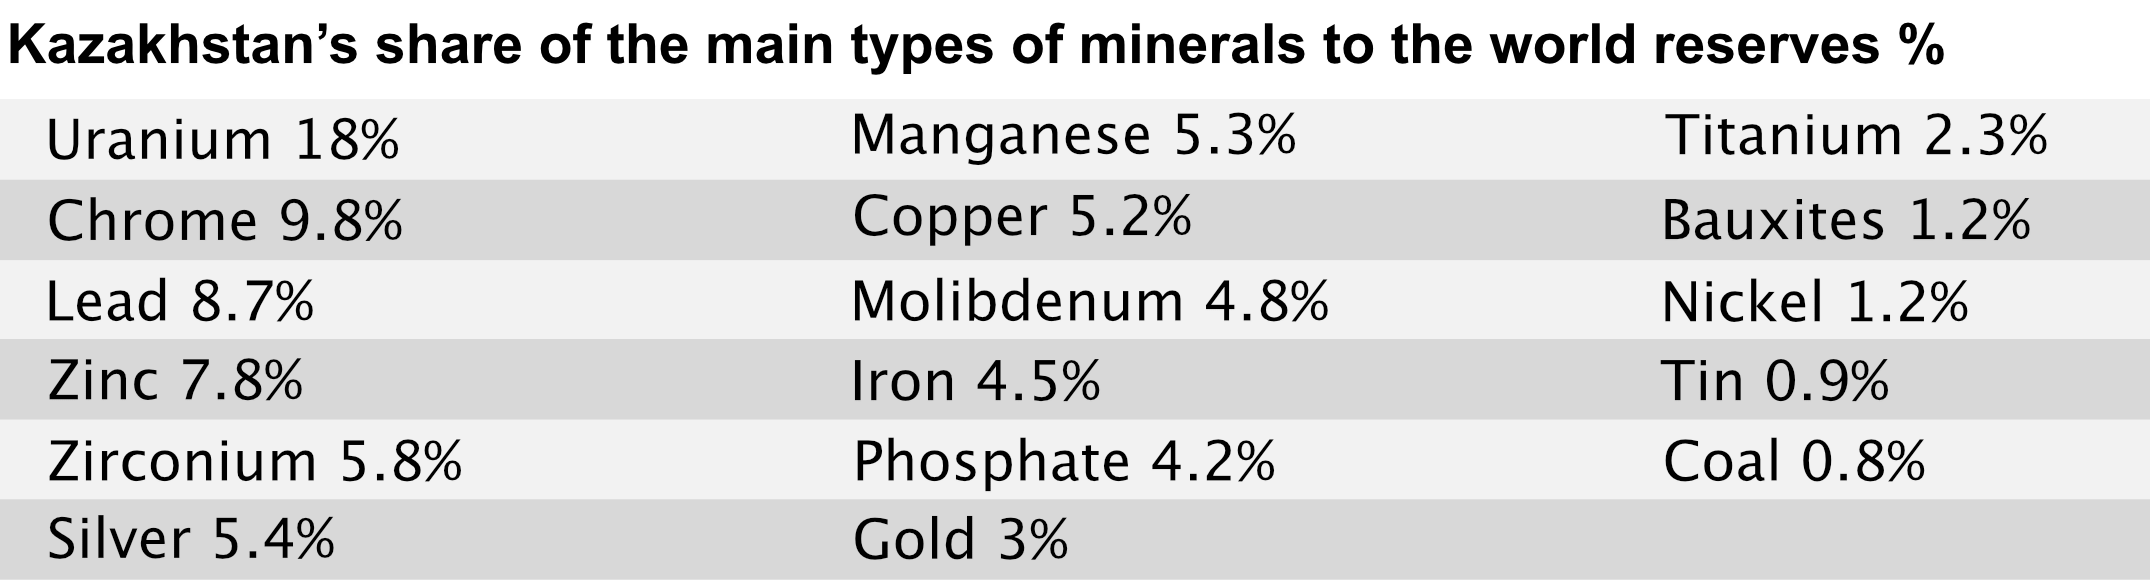 Table showing Kazakhstan's share of the main types of minerals